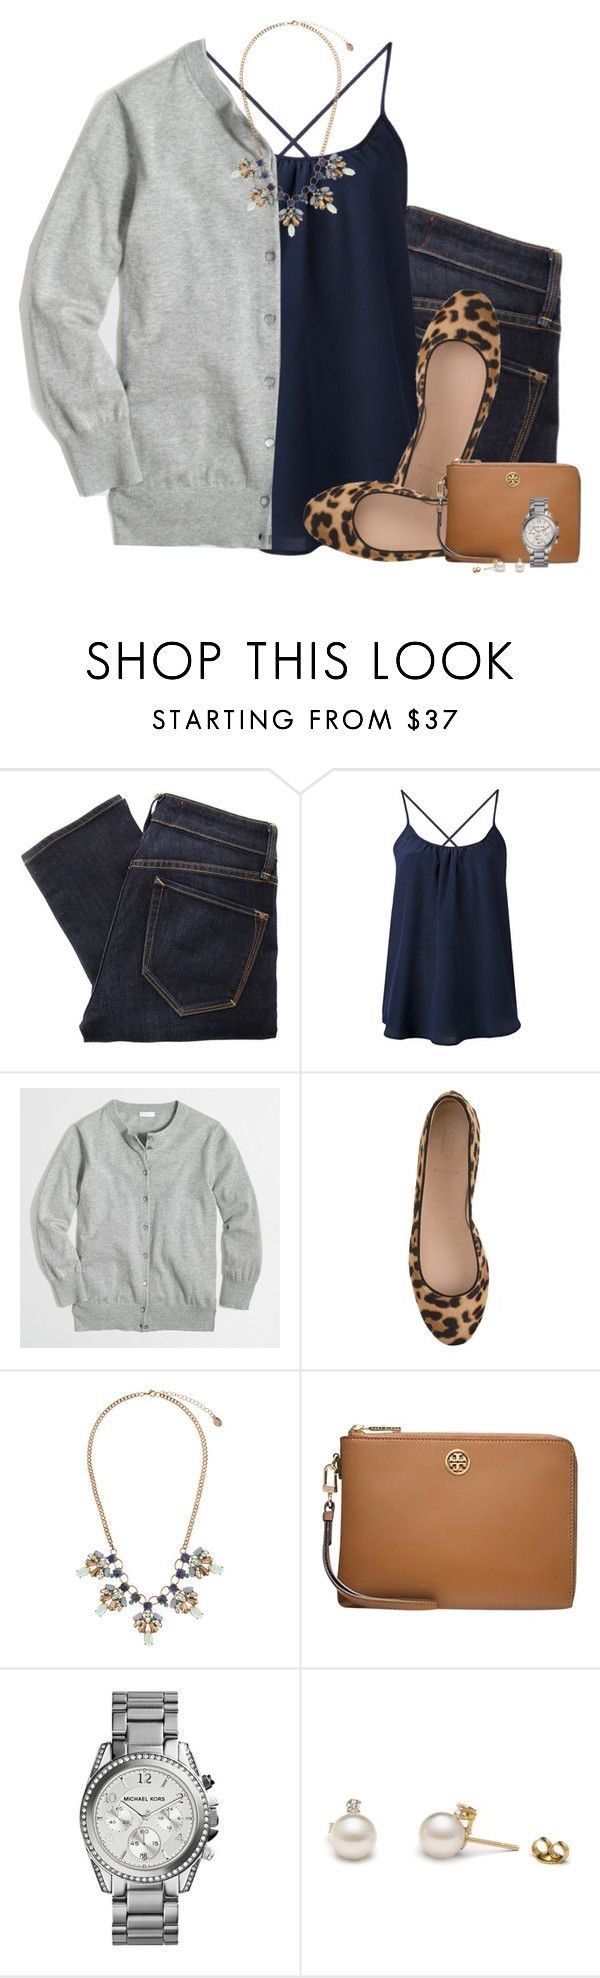 """""""J.crew cardigan, navy camisole & leopard flats"""" by steffiestaffie ❤ liked on Polyvore featuring Marc by Marc Jacobs, Amour Vert, J.Crew, Accessorize, Tory Burch, Michael Kors, women's clothing, women, female and woman"""